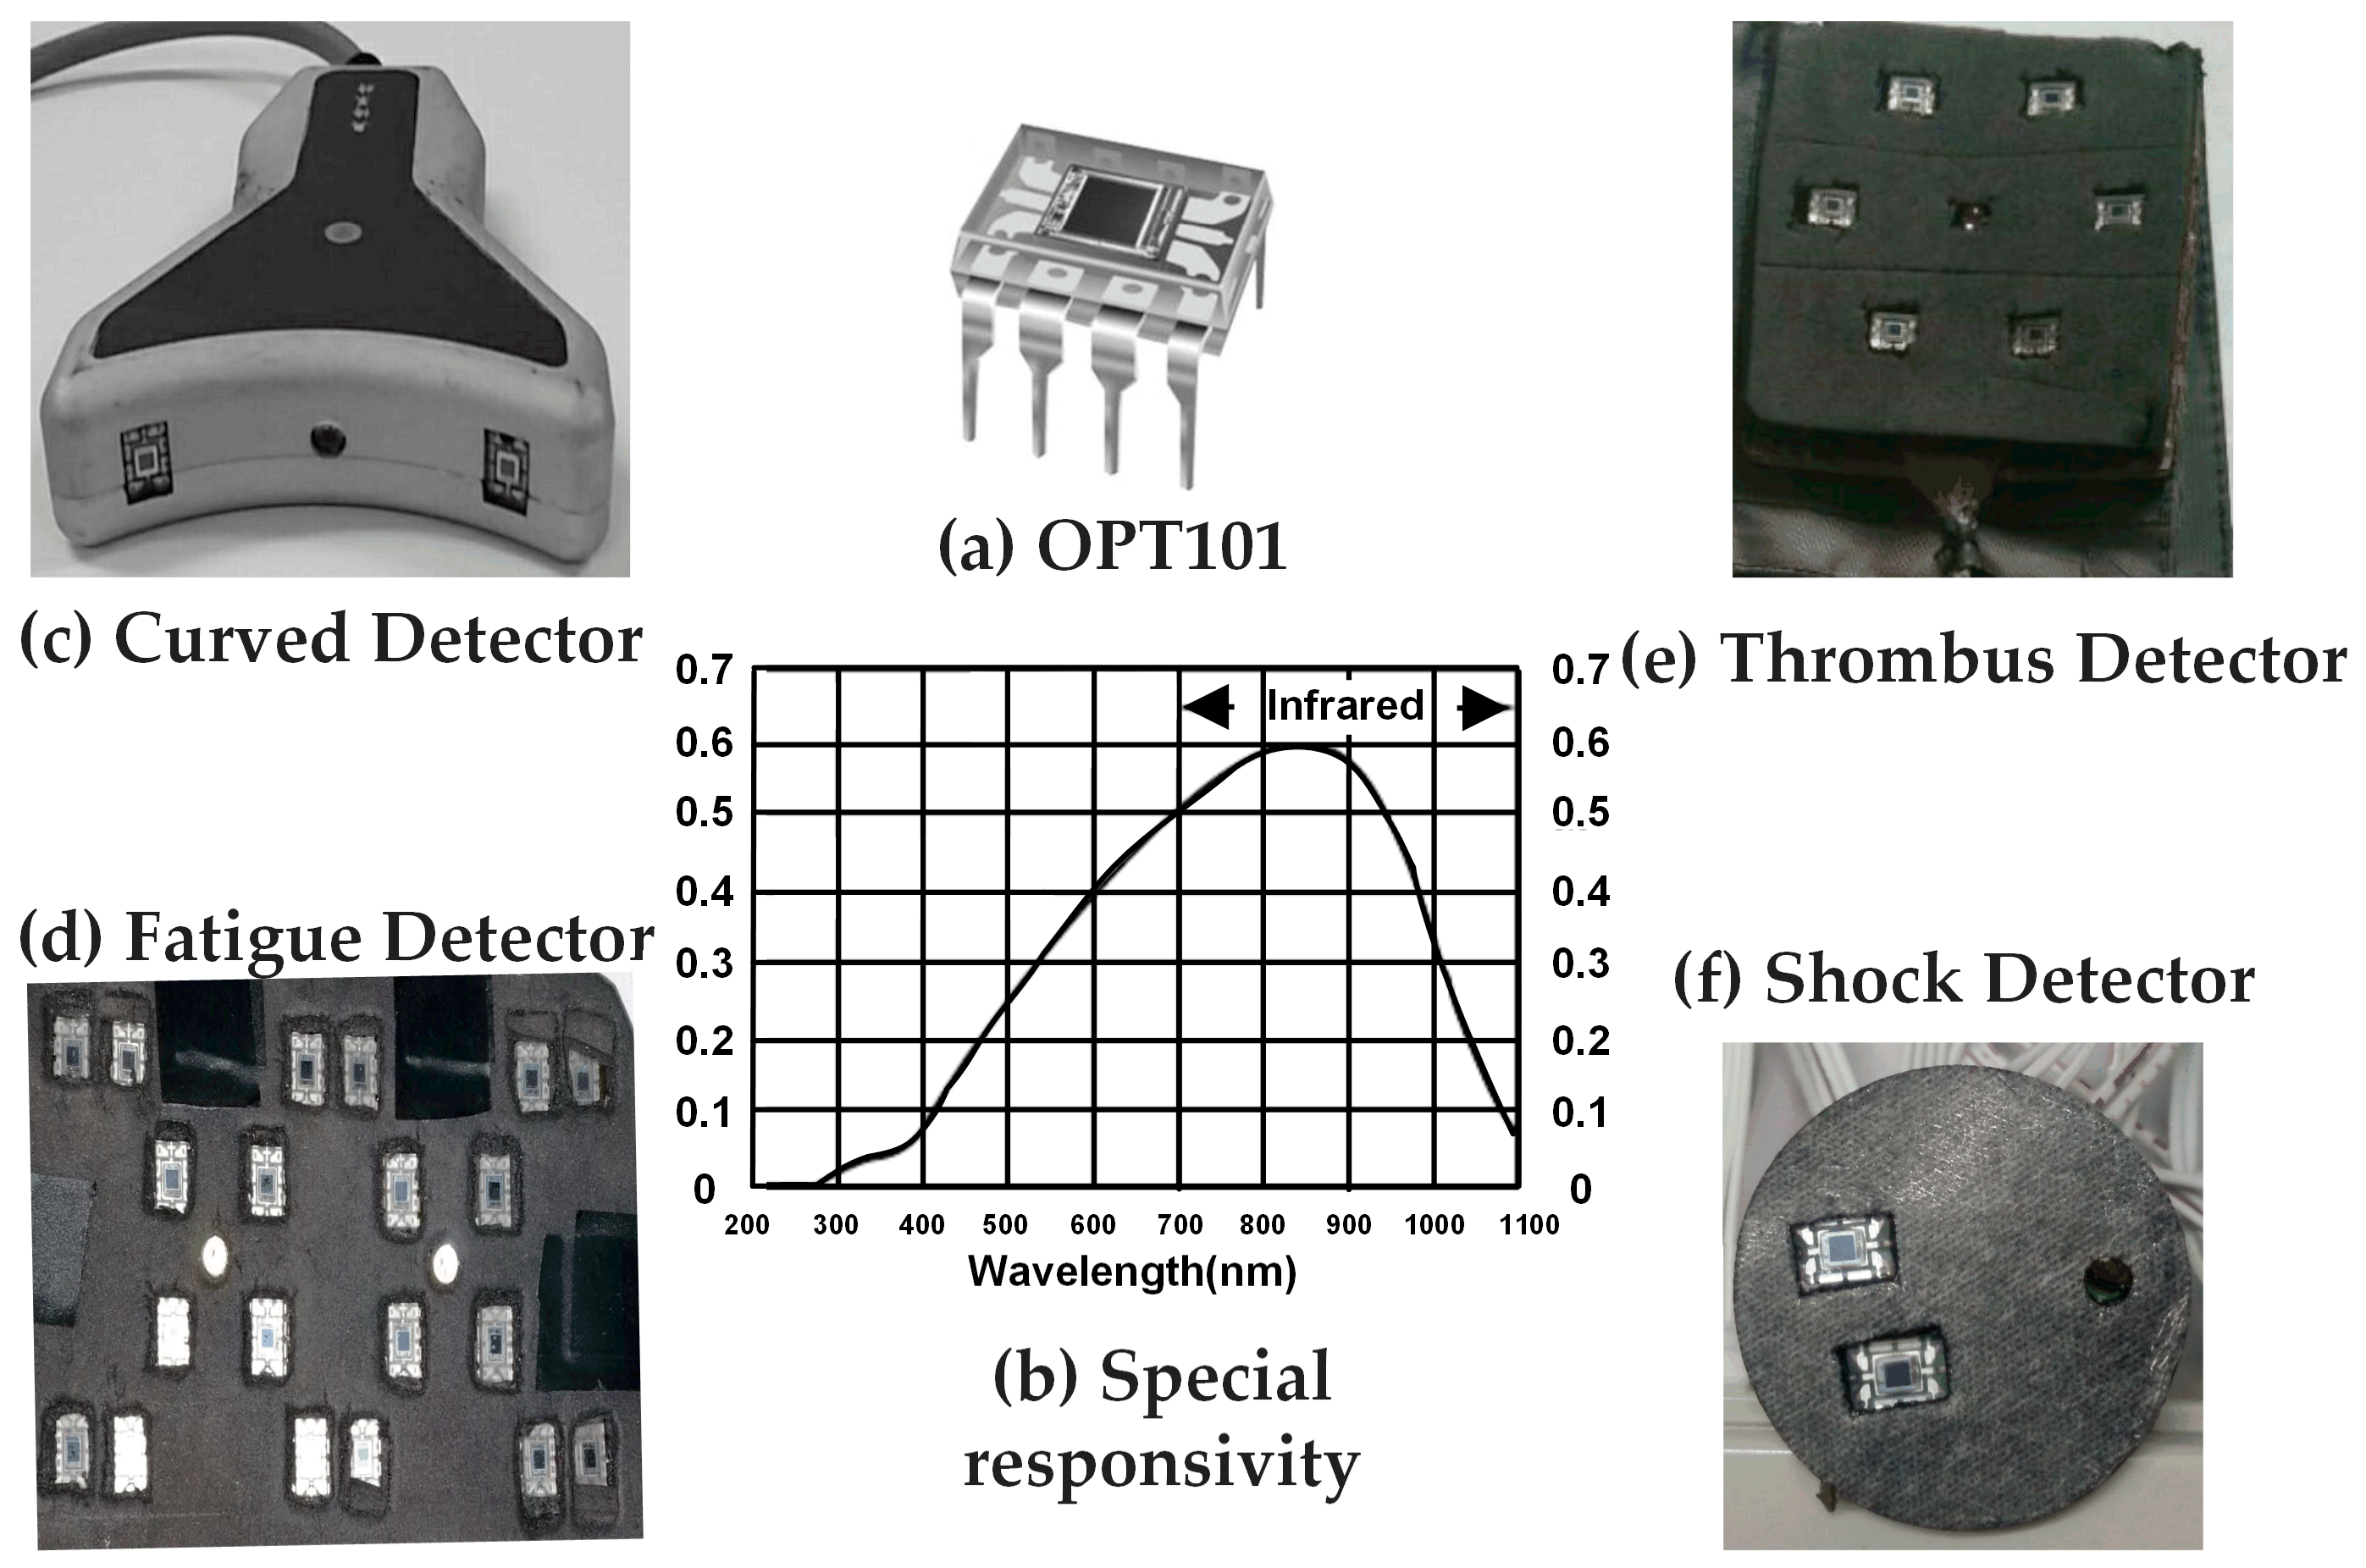 Sensors Free Full Text A Brief Review Of Opt101 Sensor Transimpedance Amplifier Wikipedia 17 01701 G001